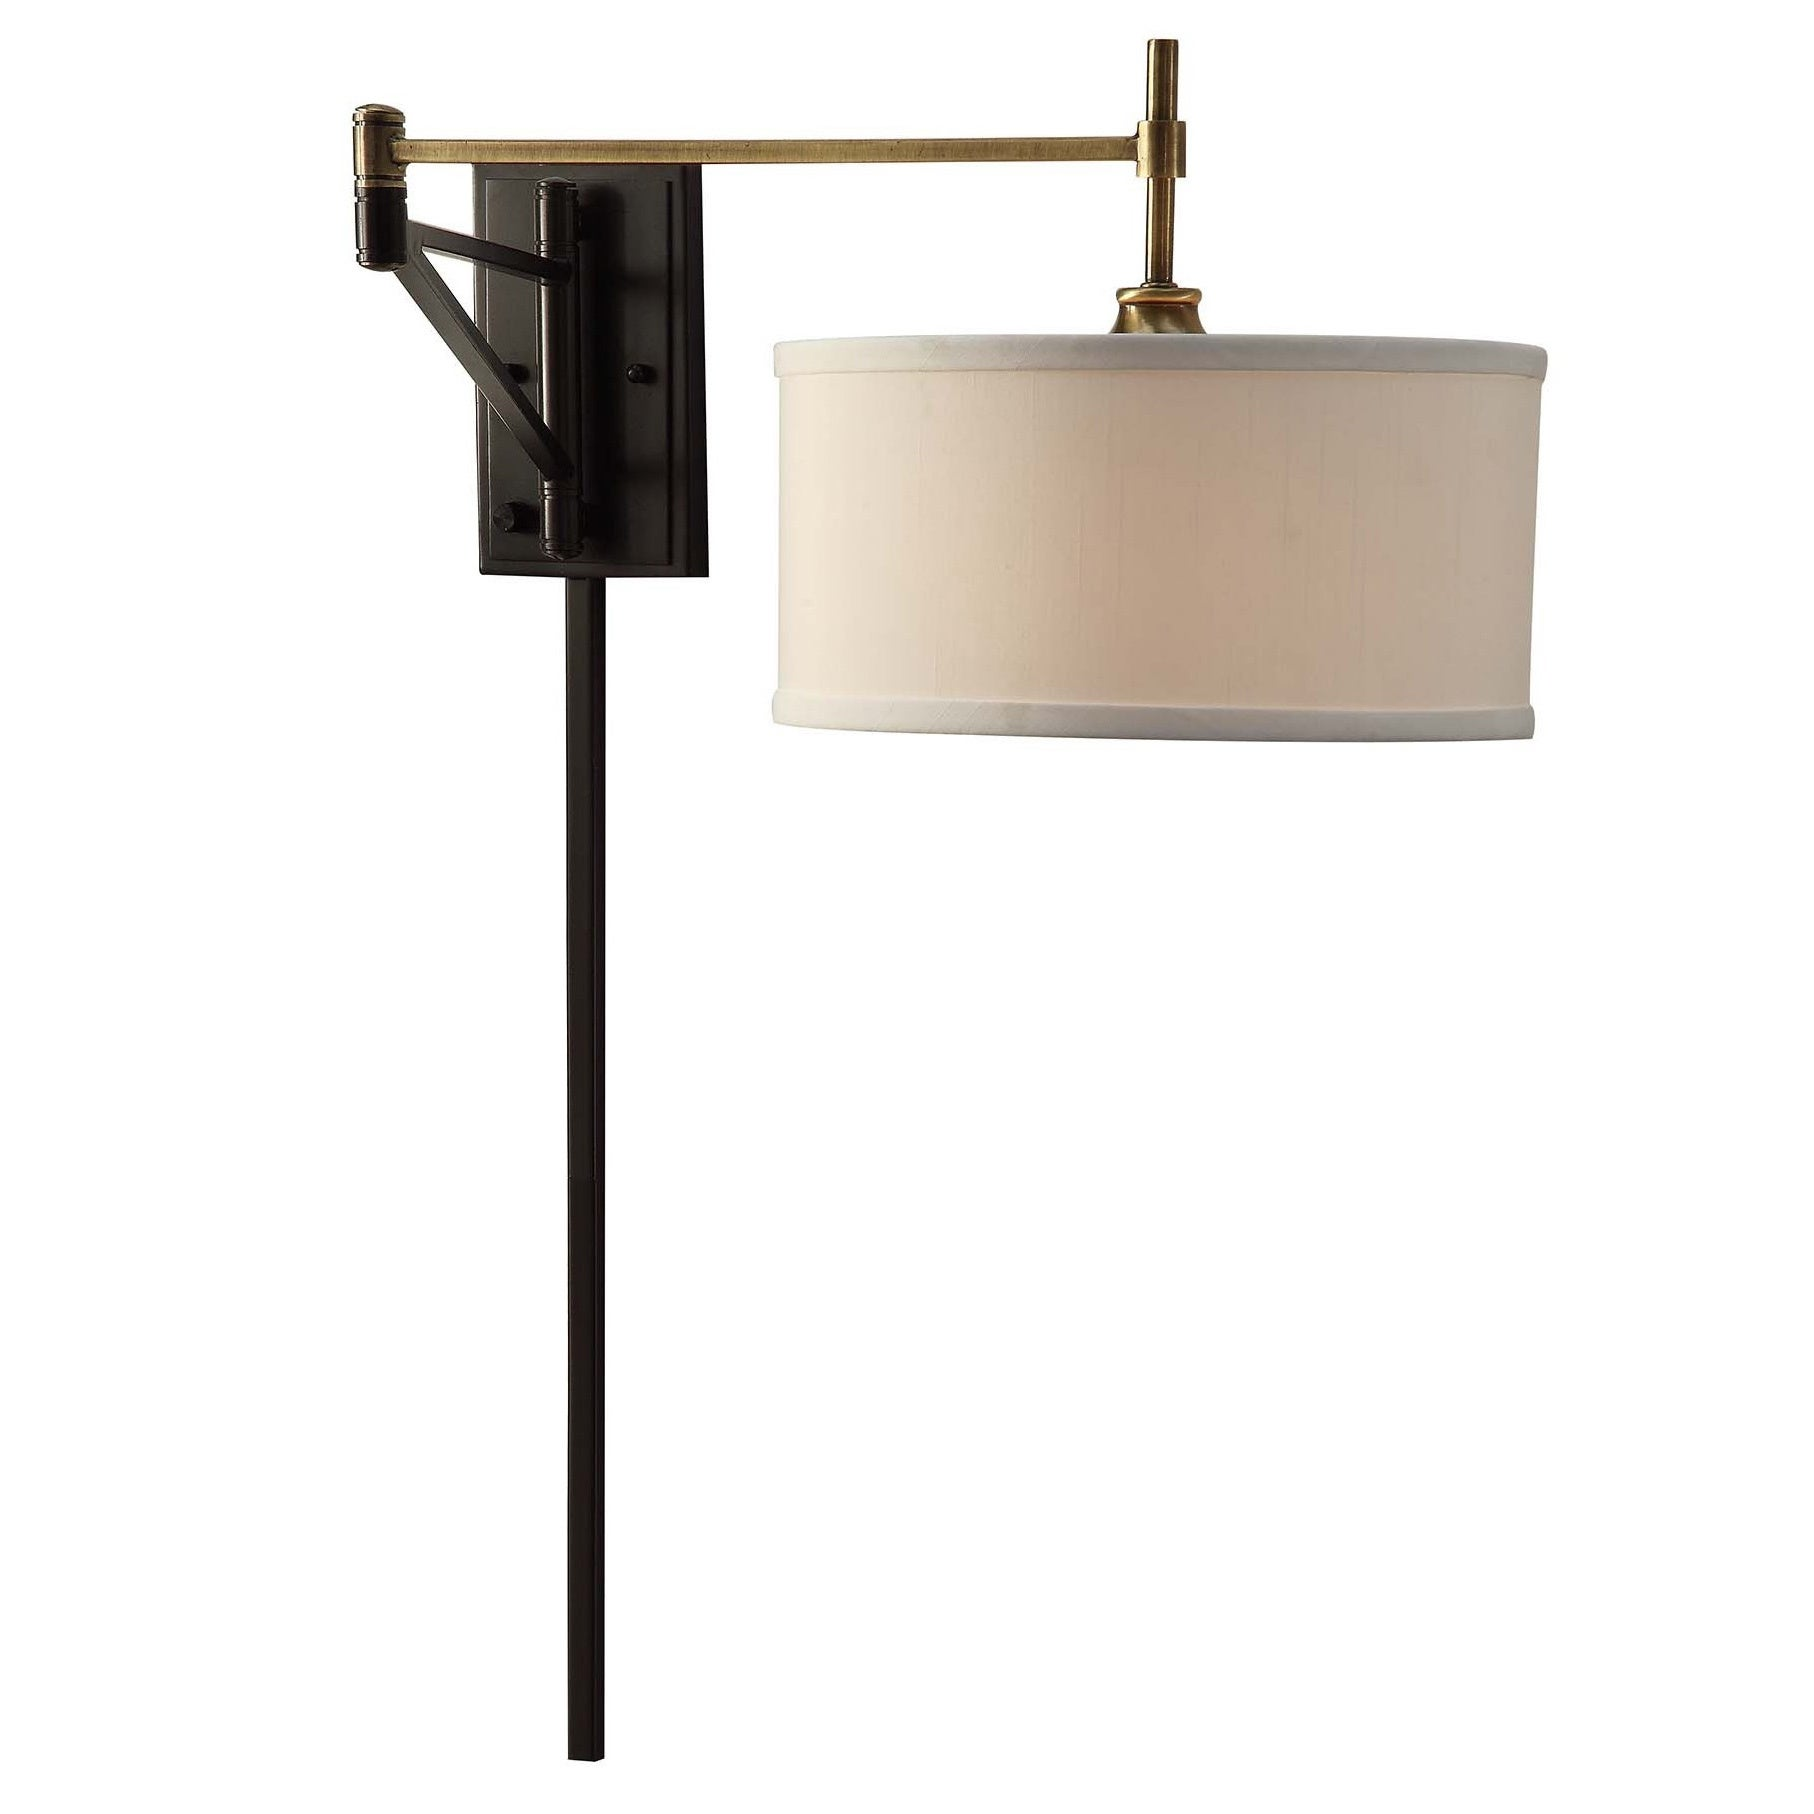 Shop Black Friday Deals On I Love Living Antique Brass And Bronze Swing Arm Wall Sconce Fixture Overstock 10379622